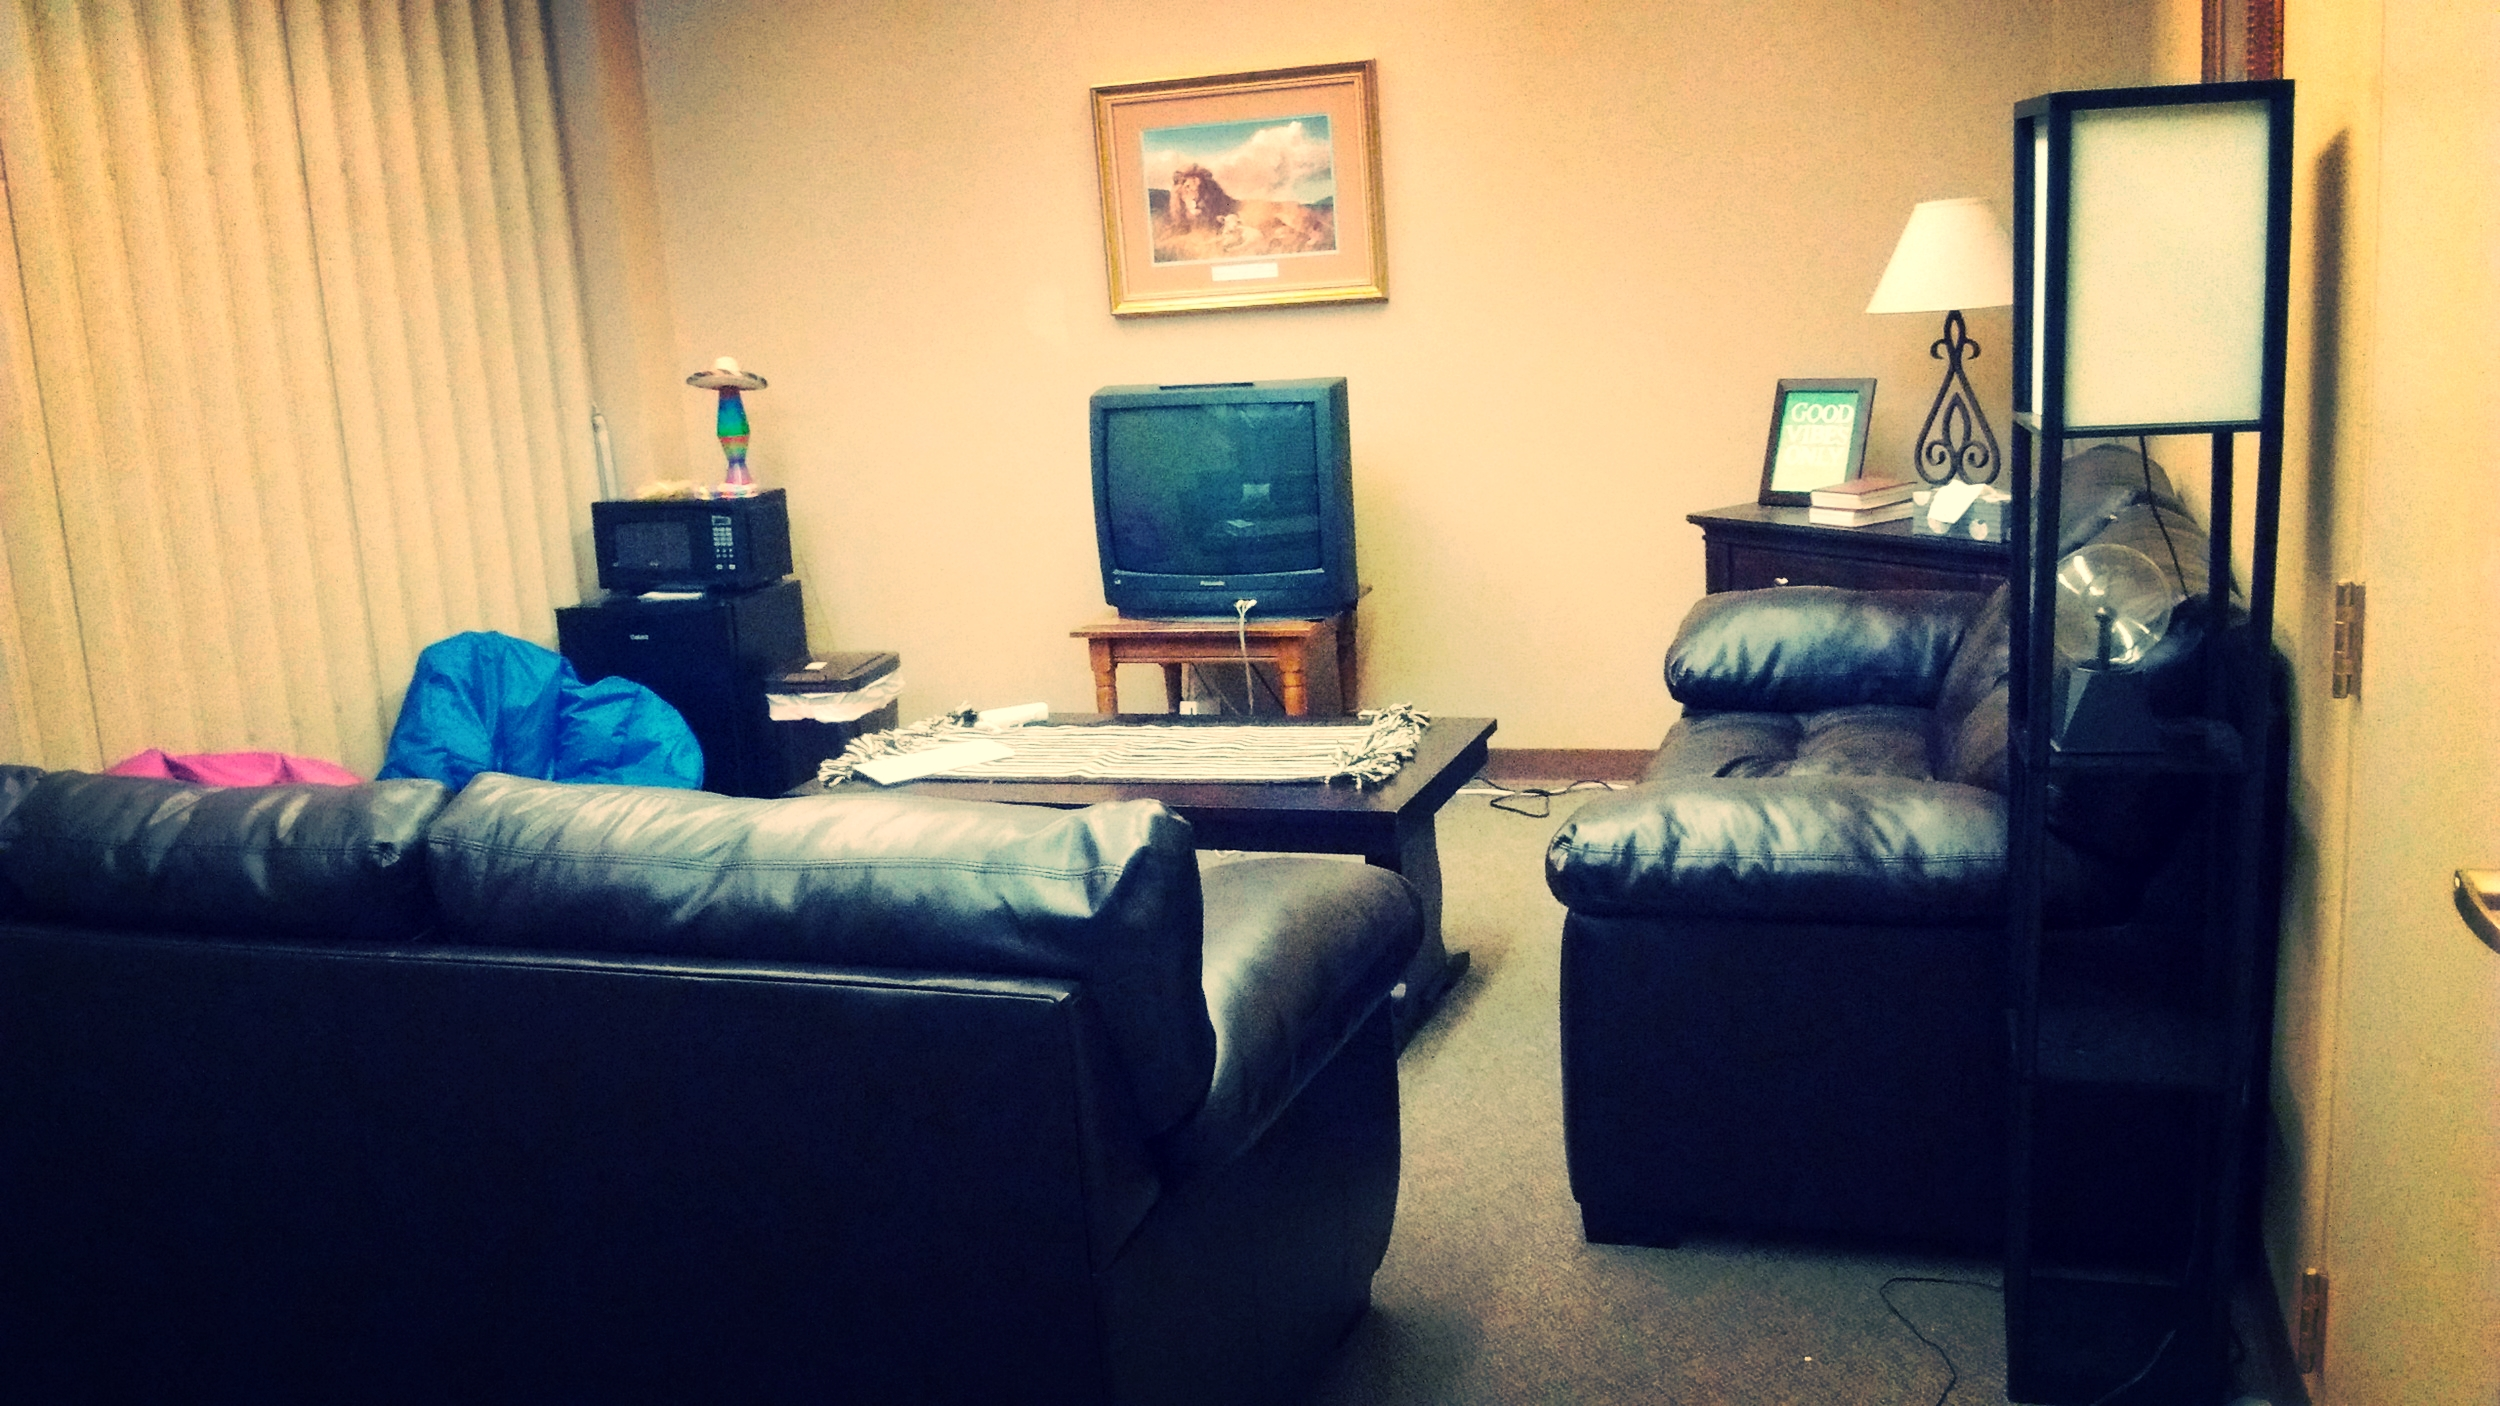 The Youth Room